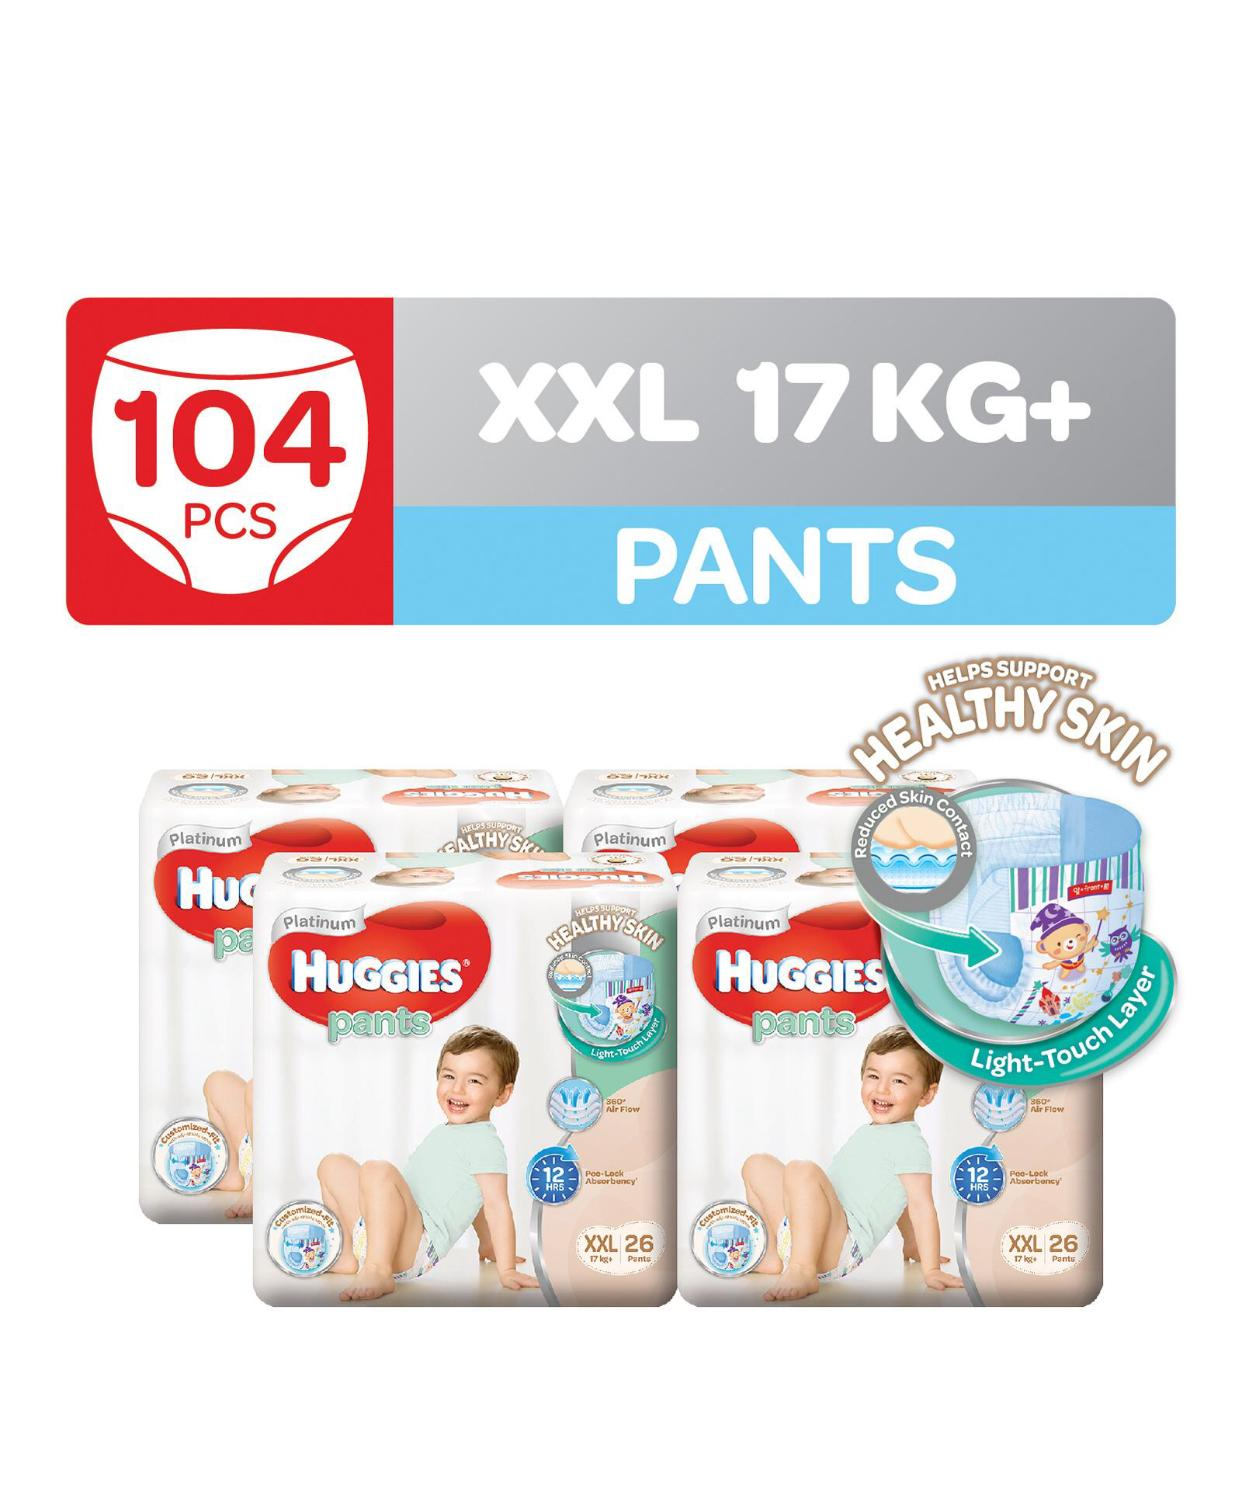 Buying New Huggies Platinum Pants Carton Size Xxl 26 X 4 Packs